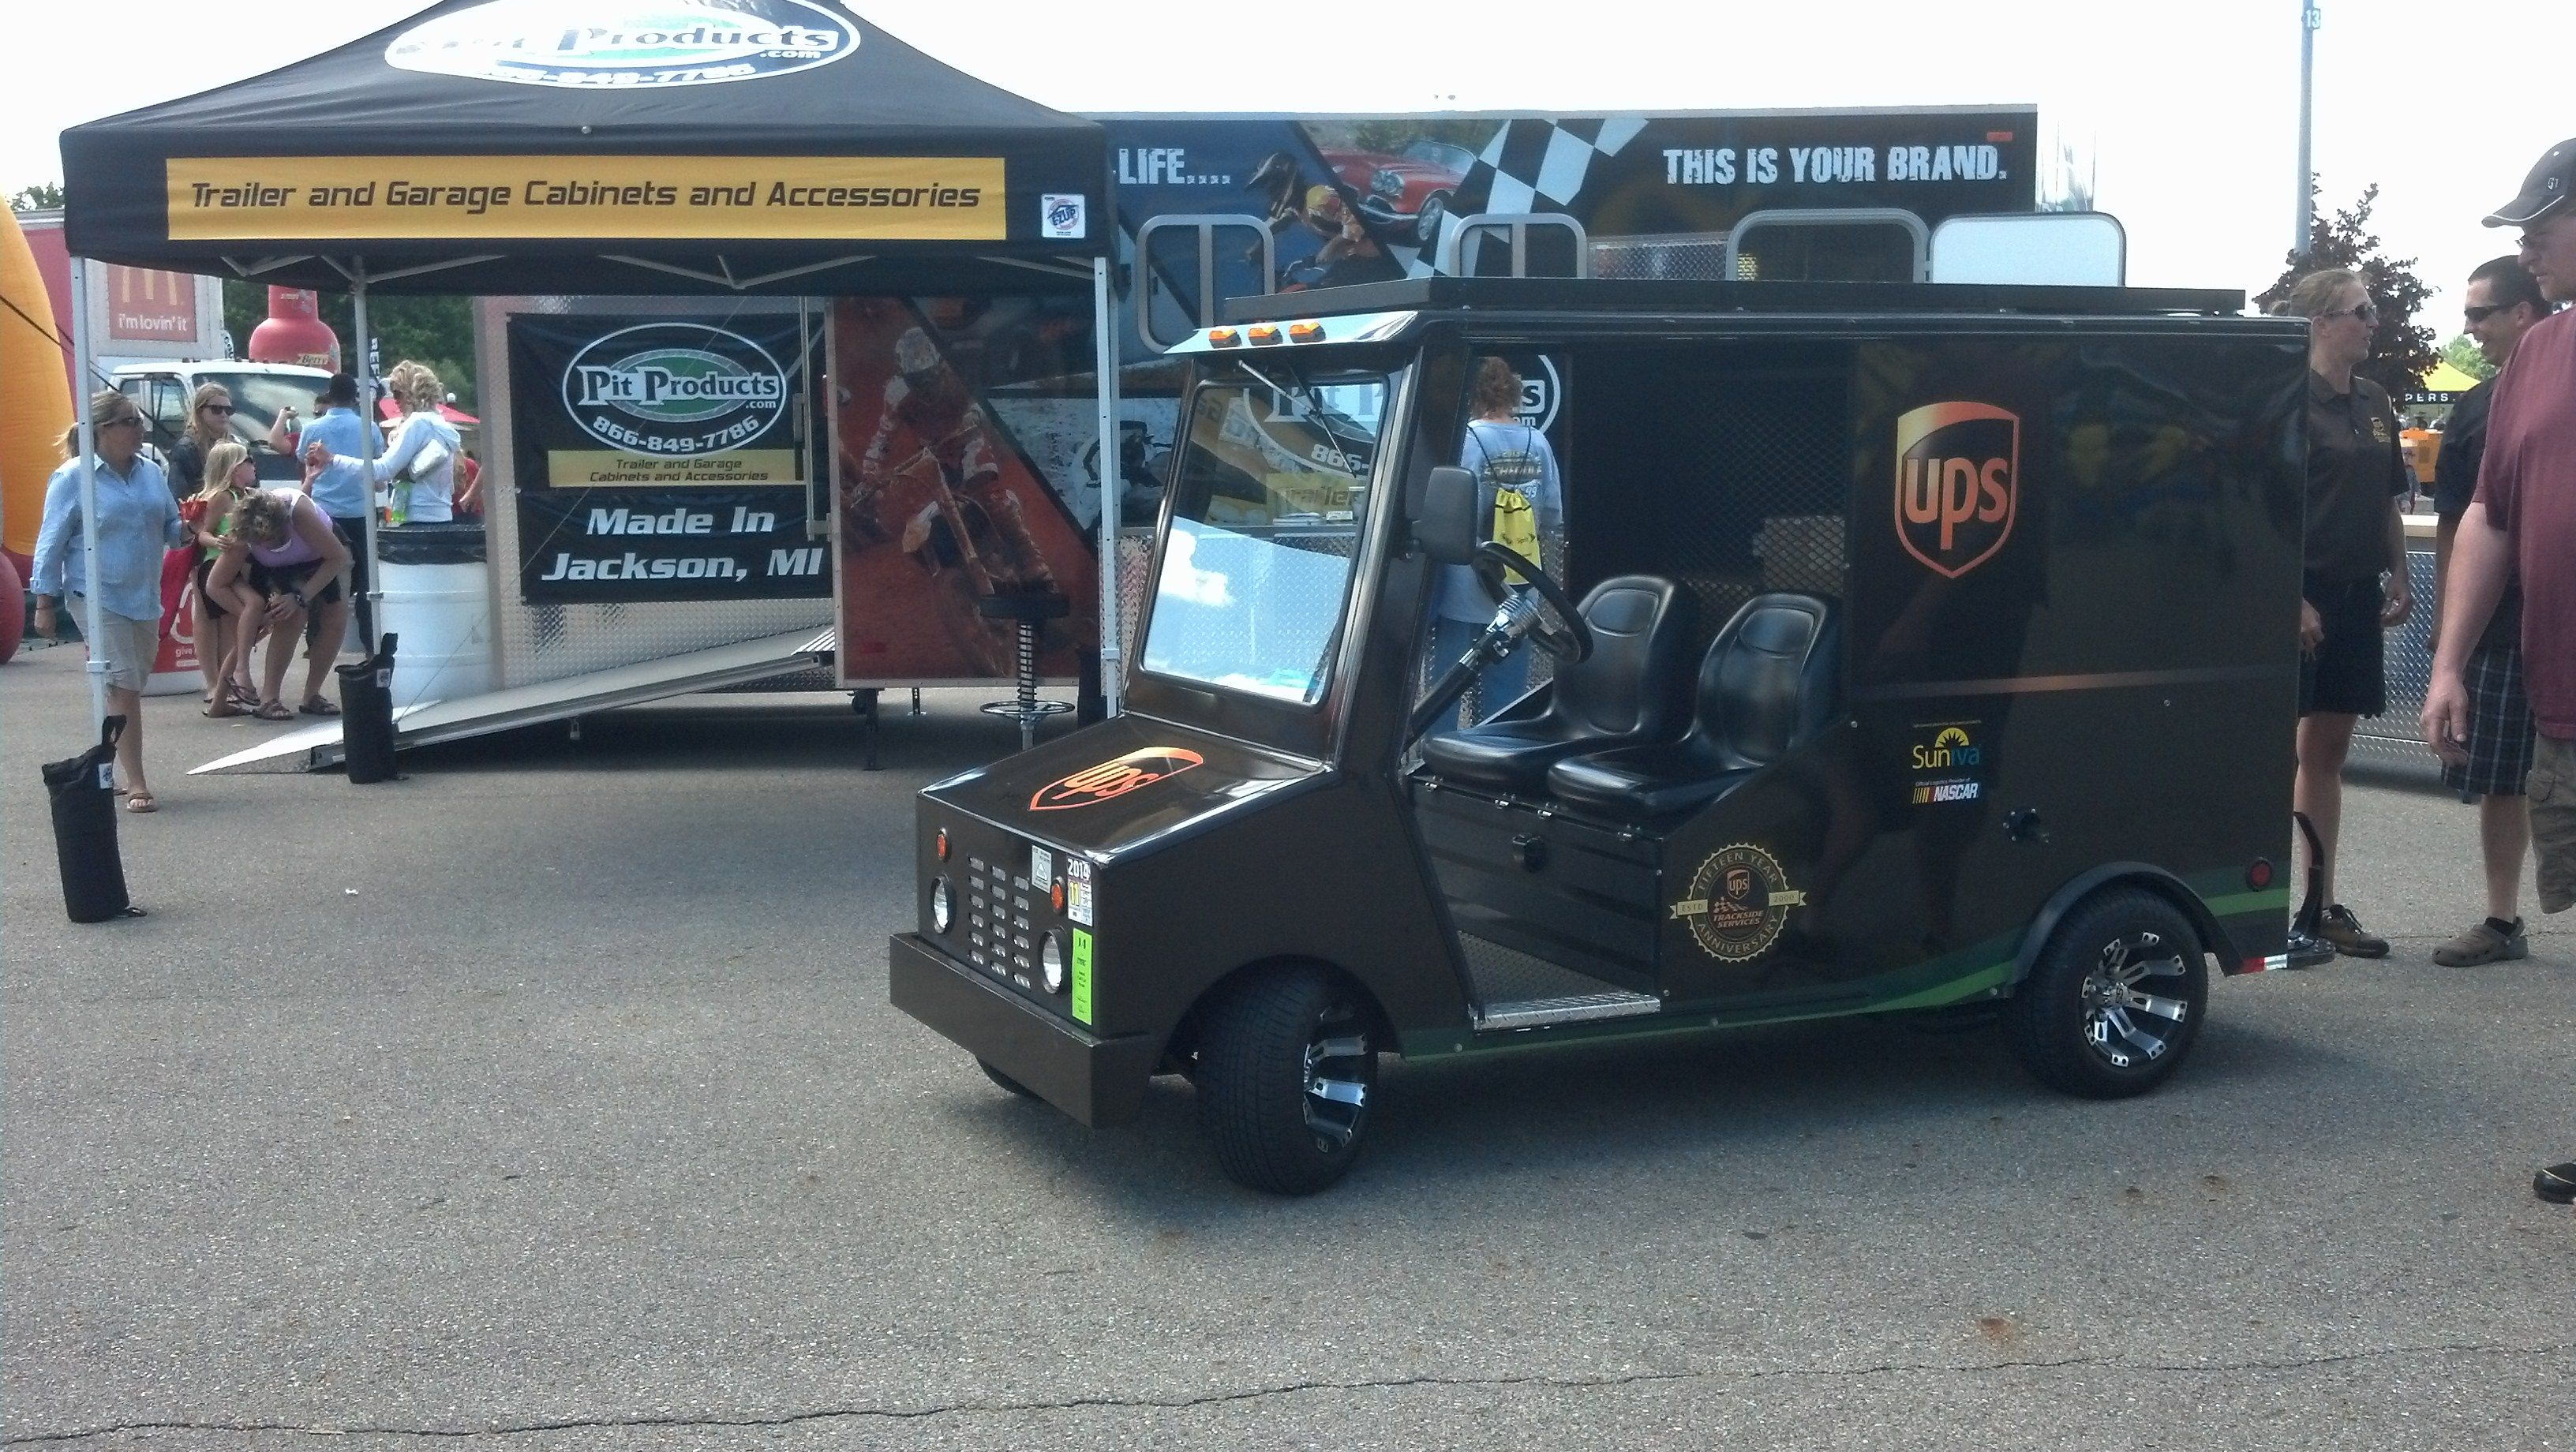 We Had A Visit From This Mini Ups Truck At Our Trailer With